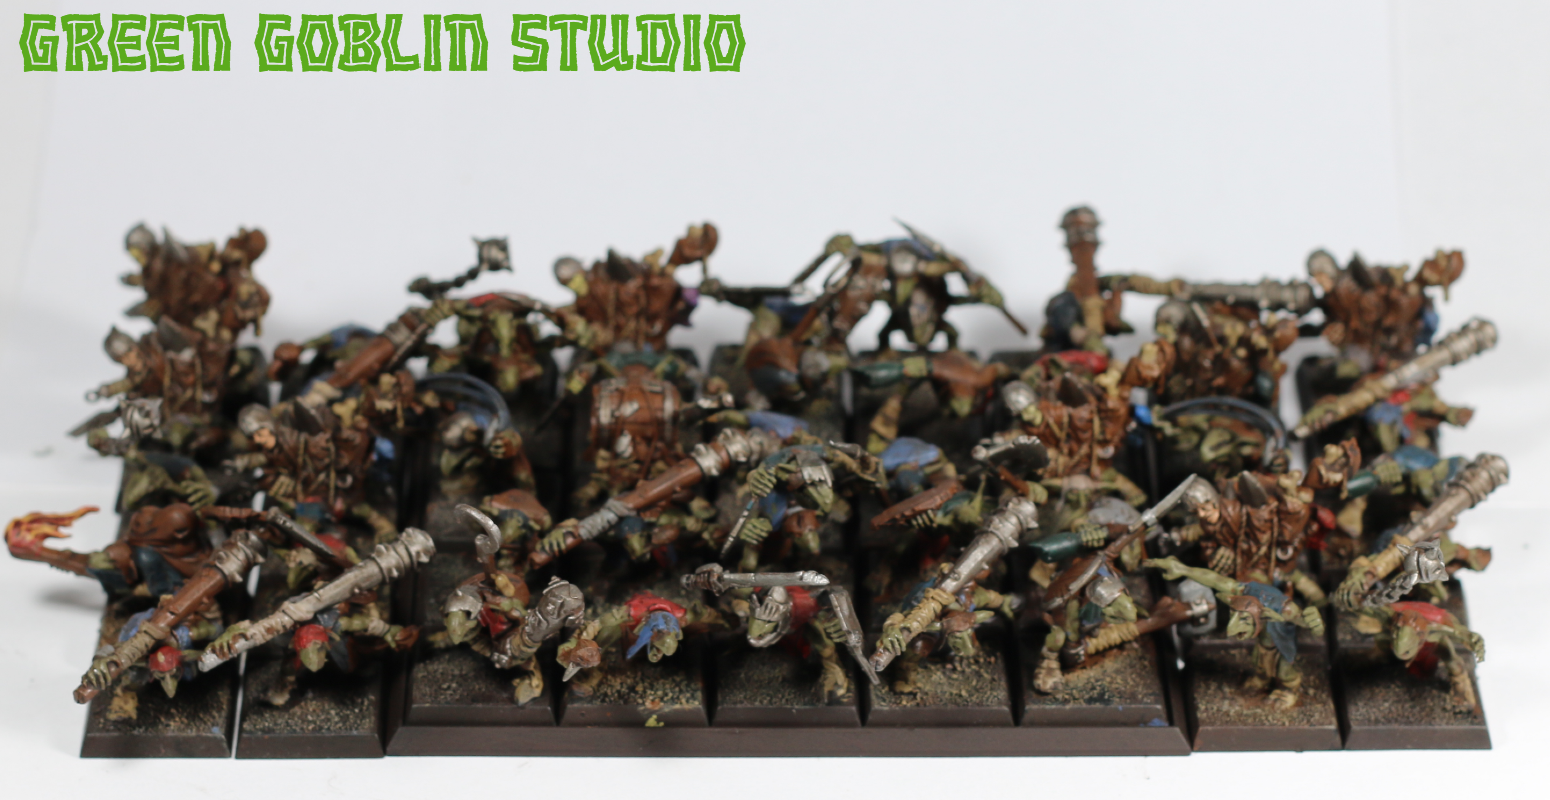 Gnoblars Green Goblin Studio New.png